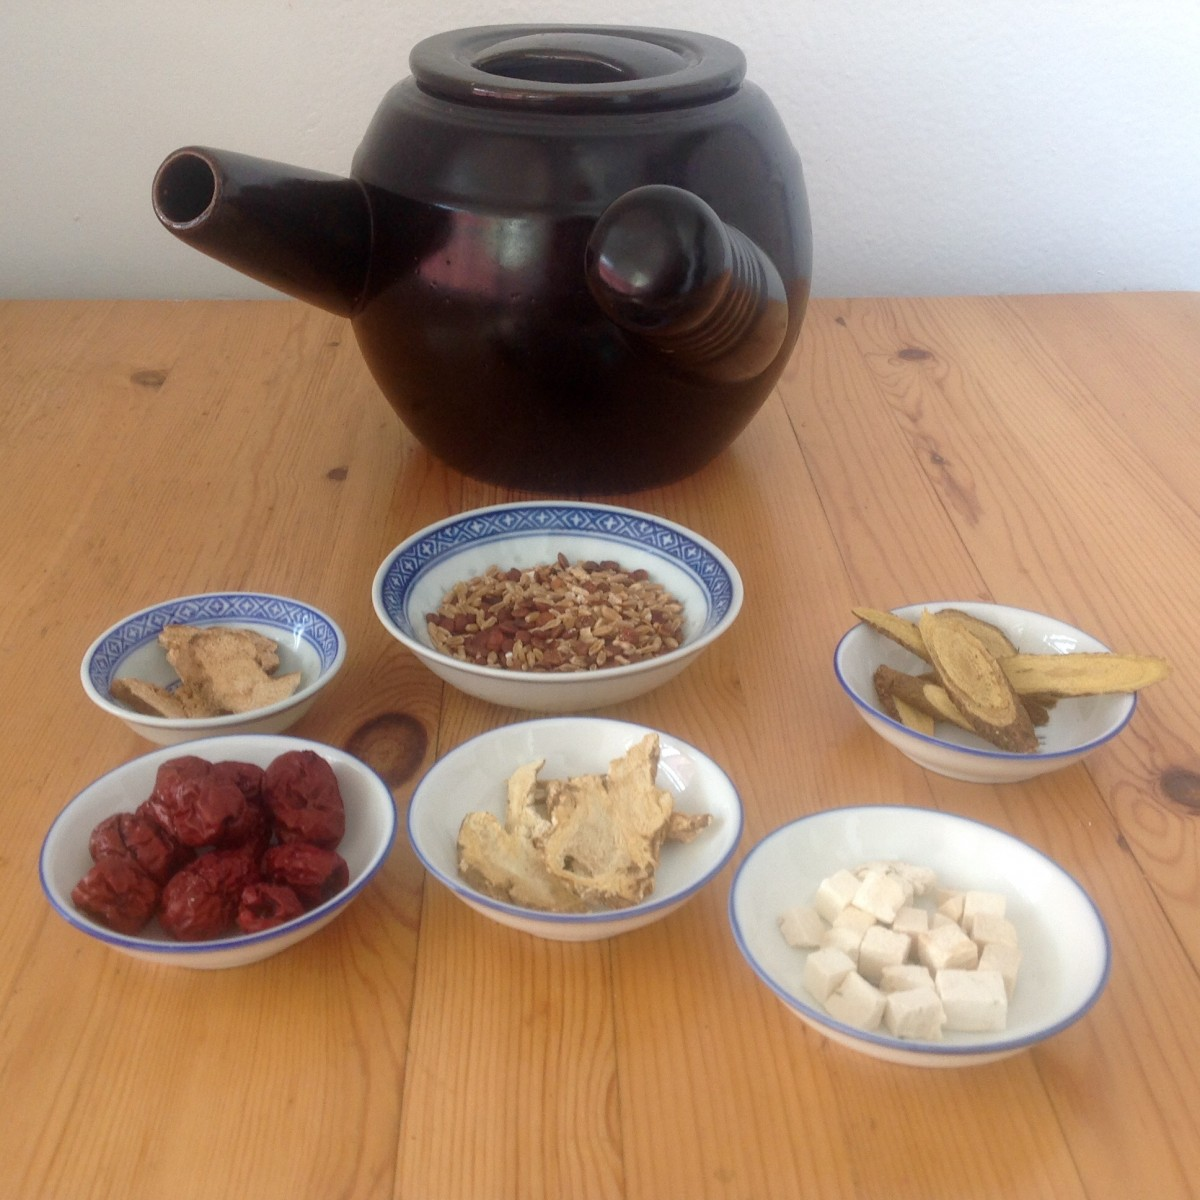 Chinese herbal treatment - Chinese Herbal Medicine Is A Wonderfully Complex Practice Which Goes Way Beyond The Typical Western Approach Of Take This One Thing For This Condition